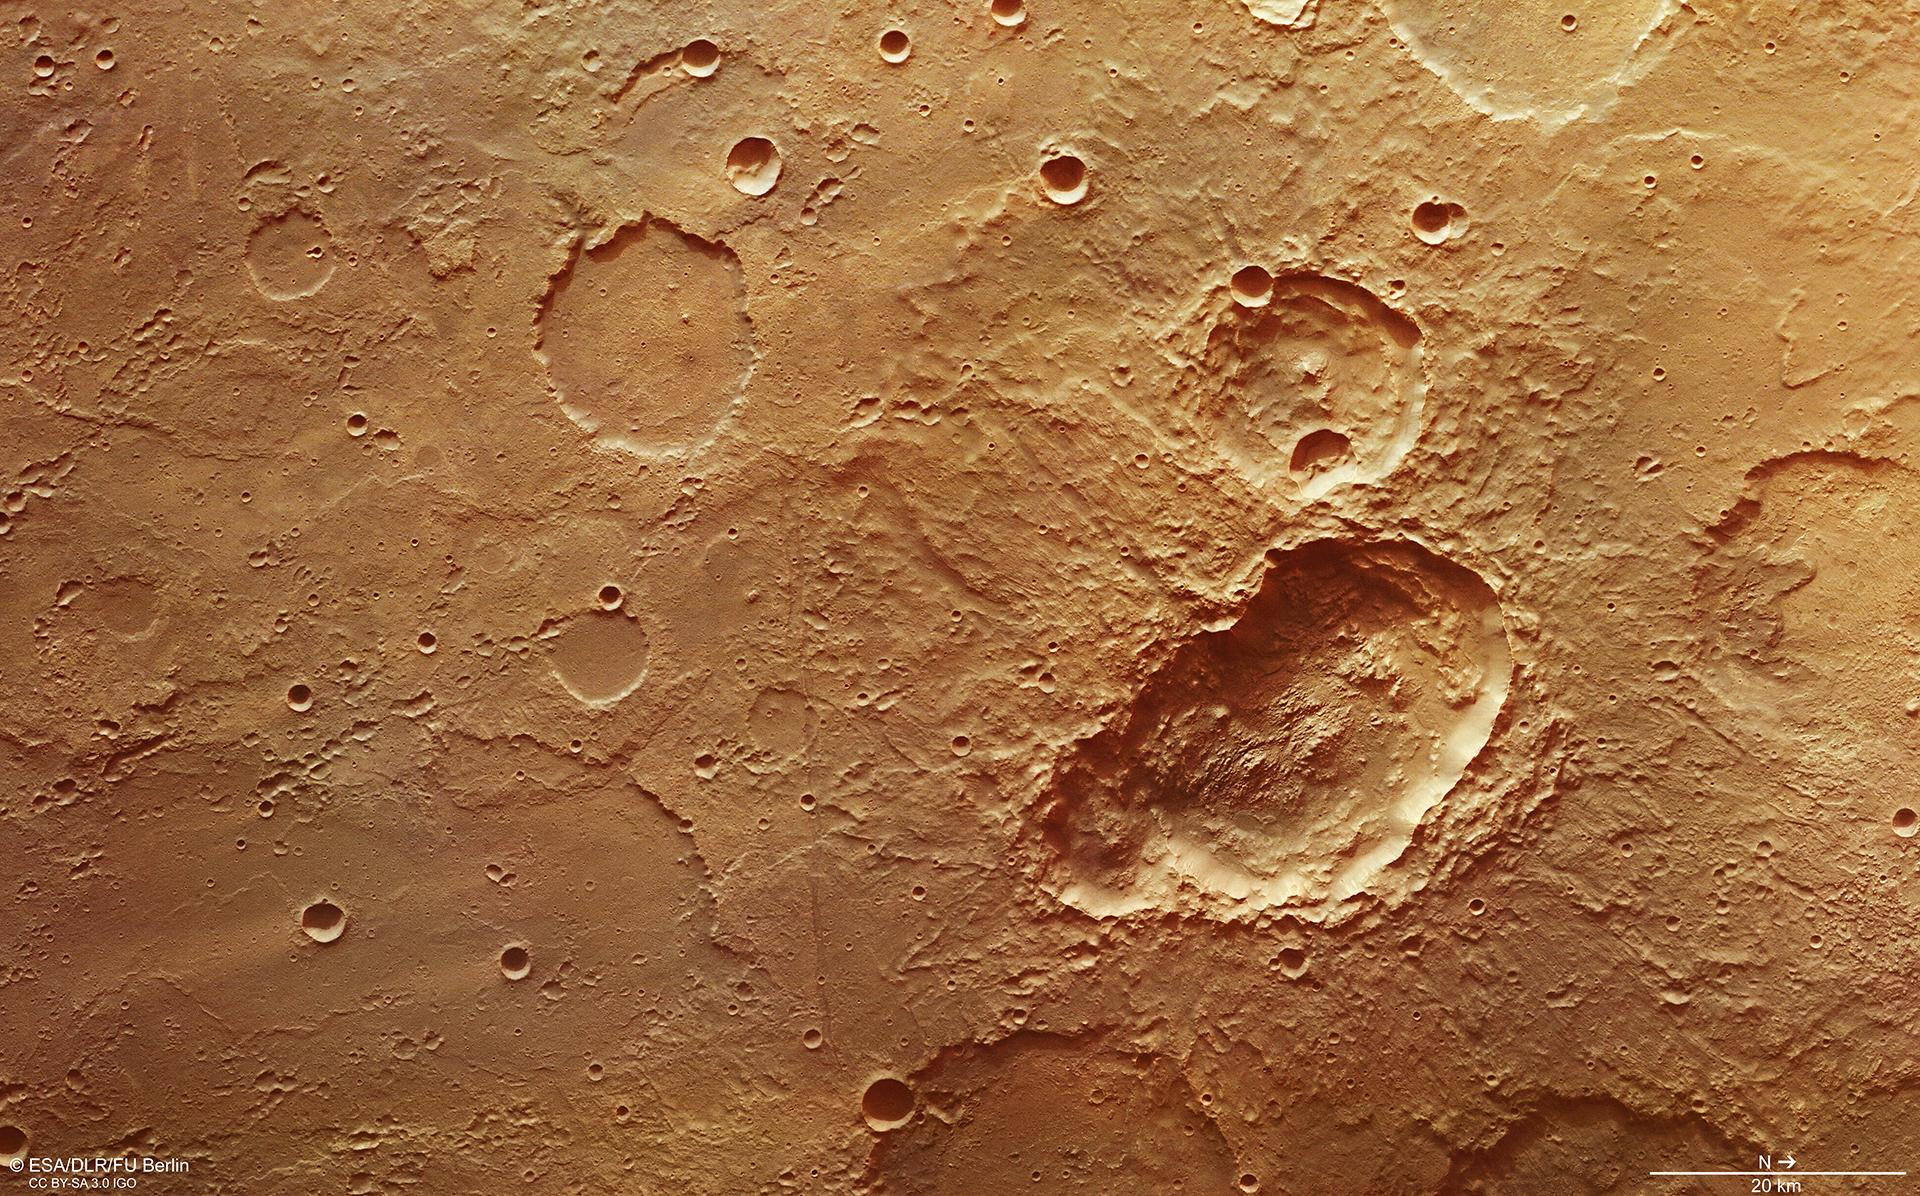 Triple_crater_in_Terra_Sirenum